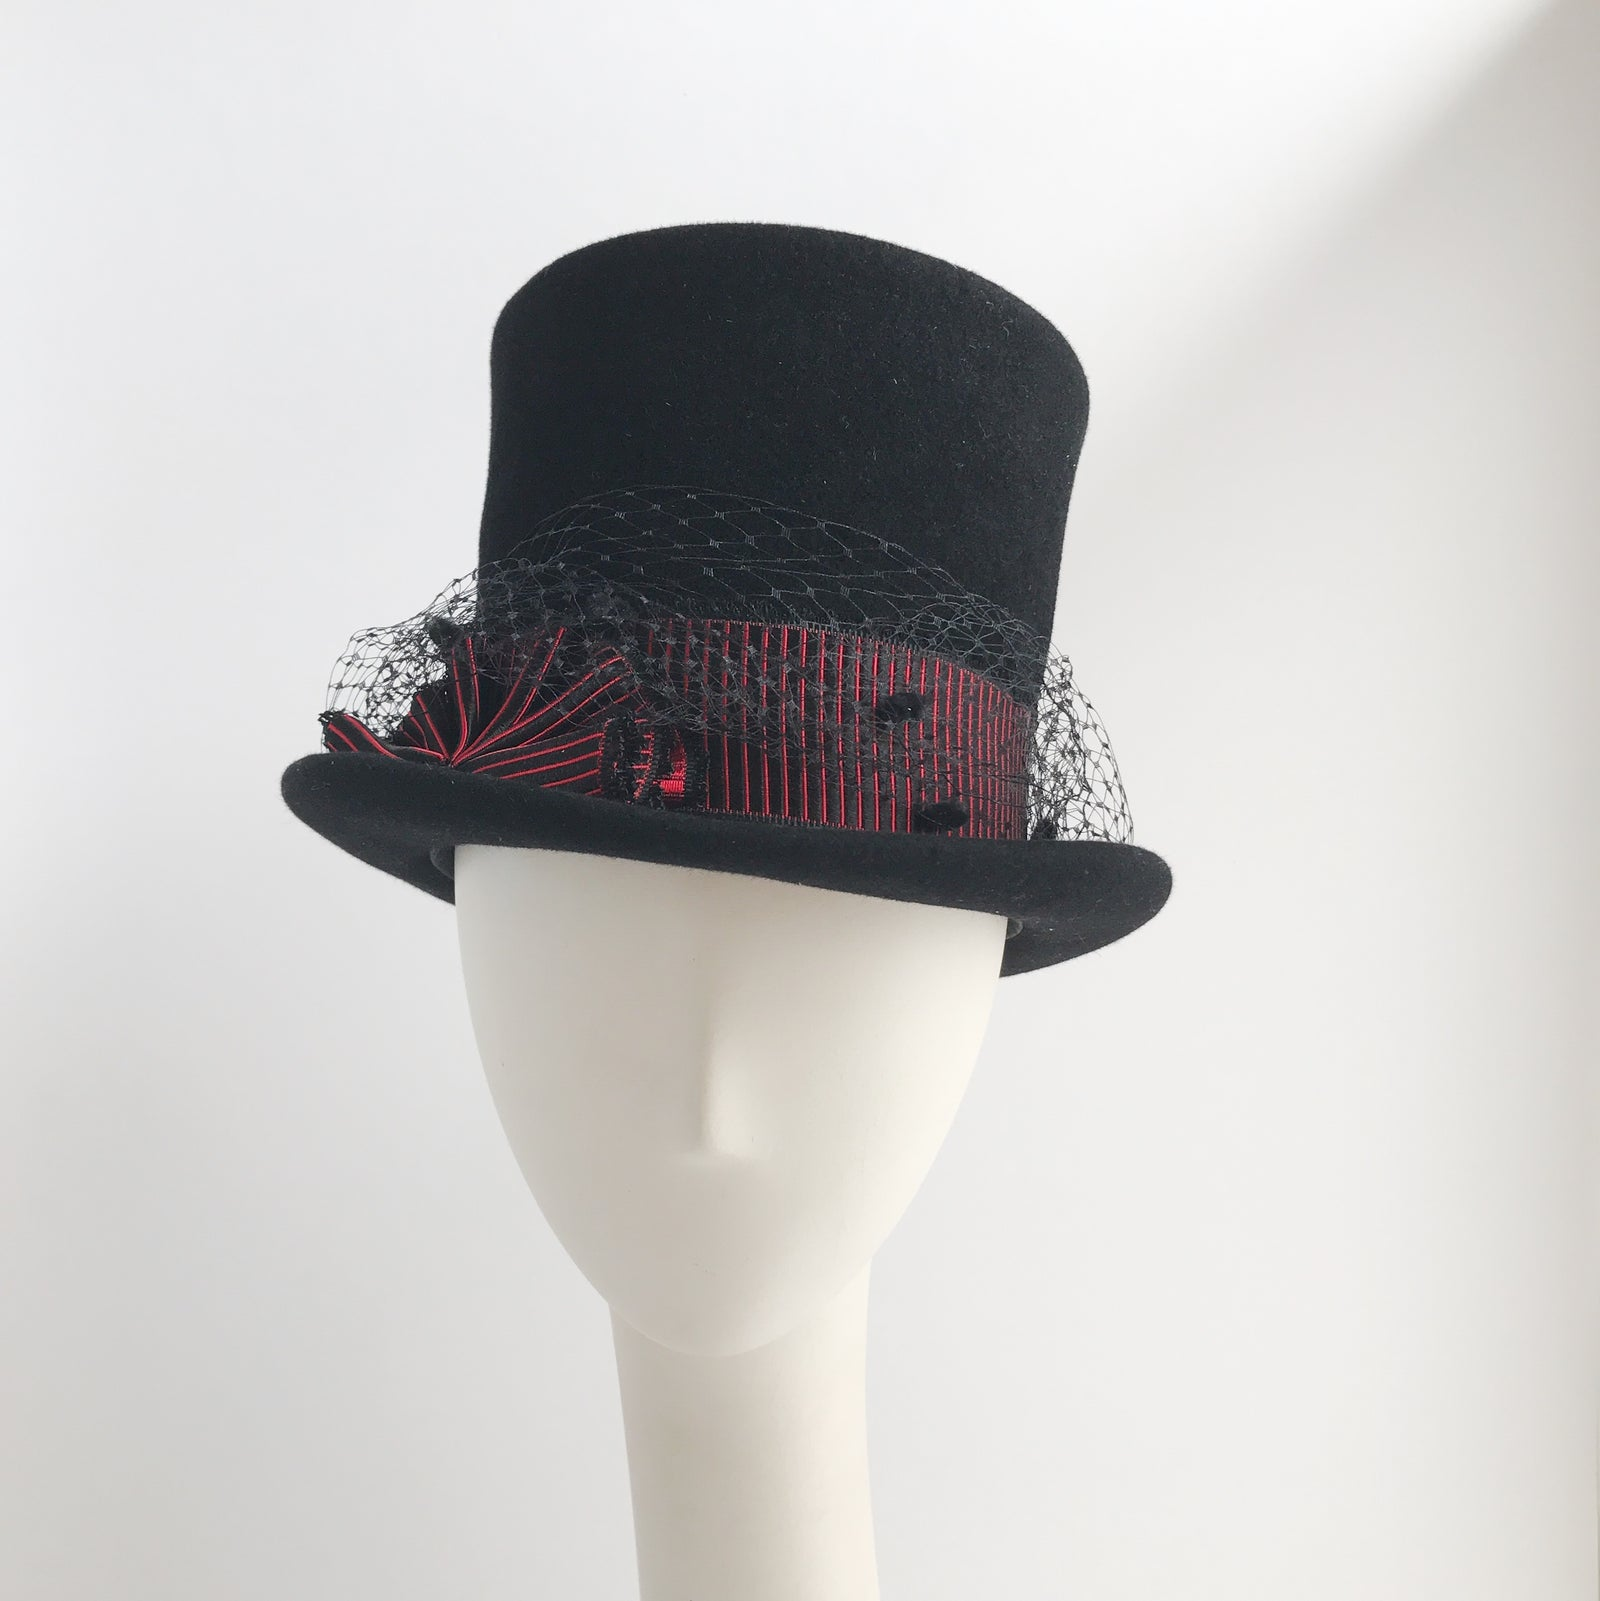 Black Marlin Top Hat with Veil and Vintage Ribbon